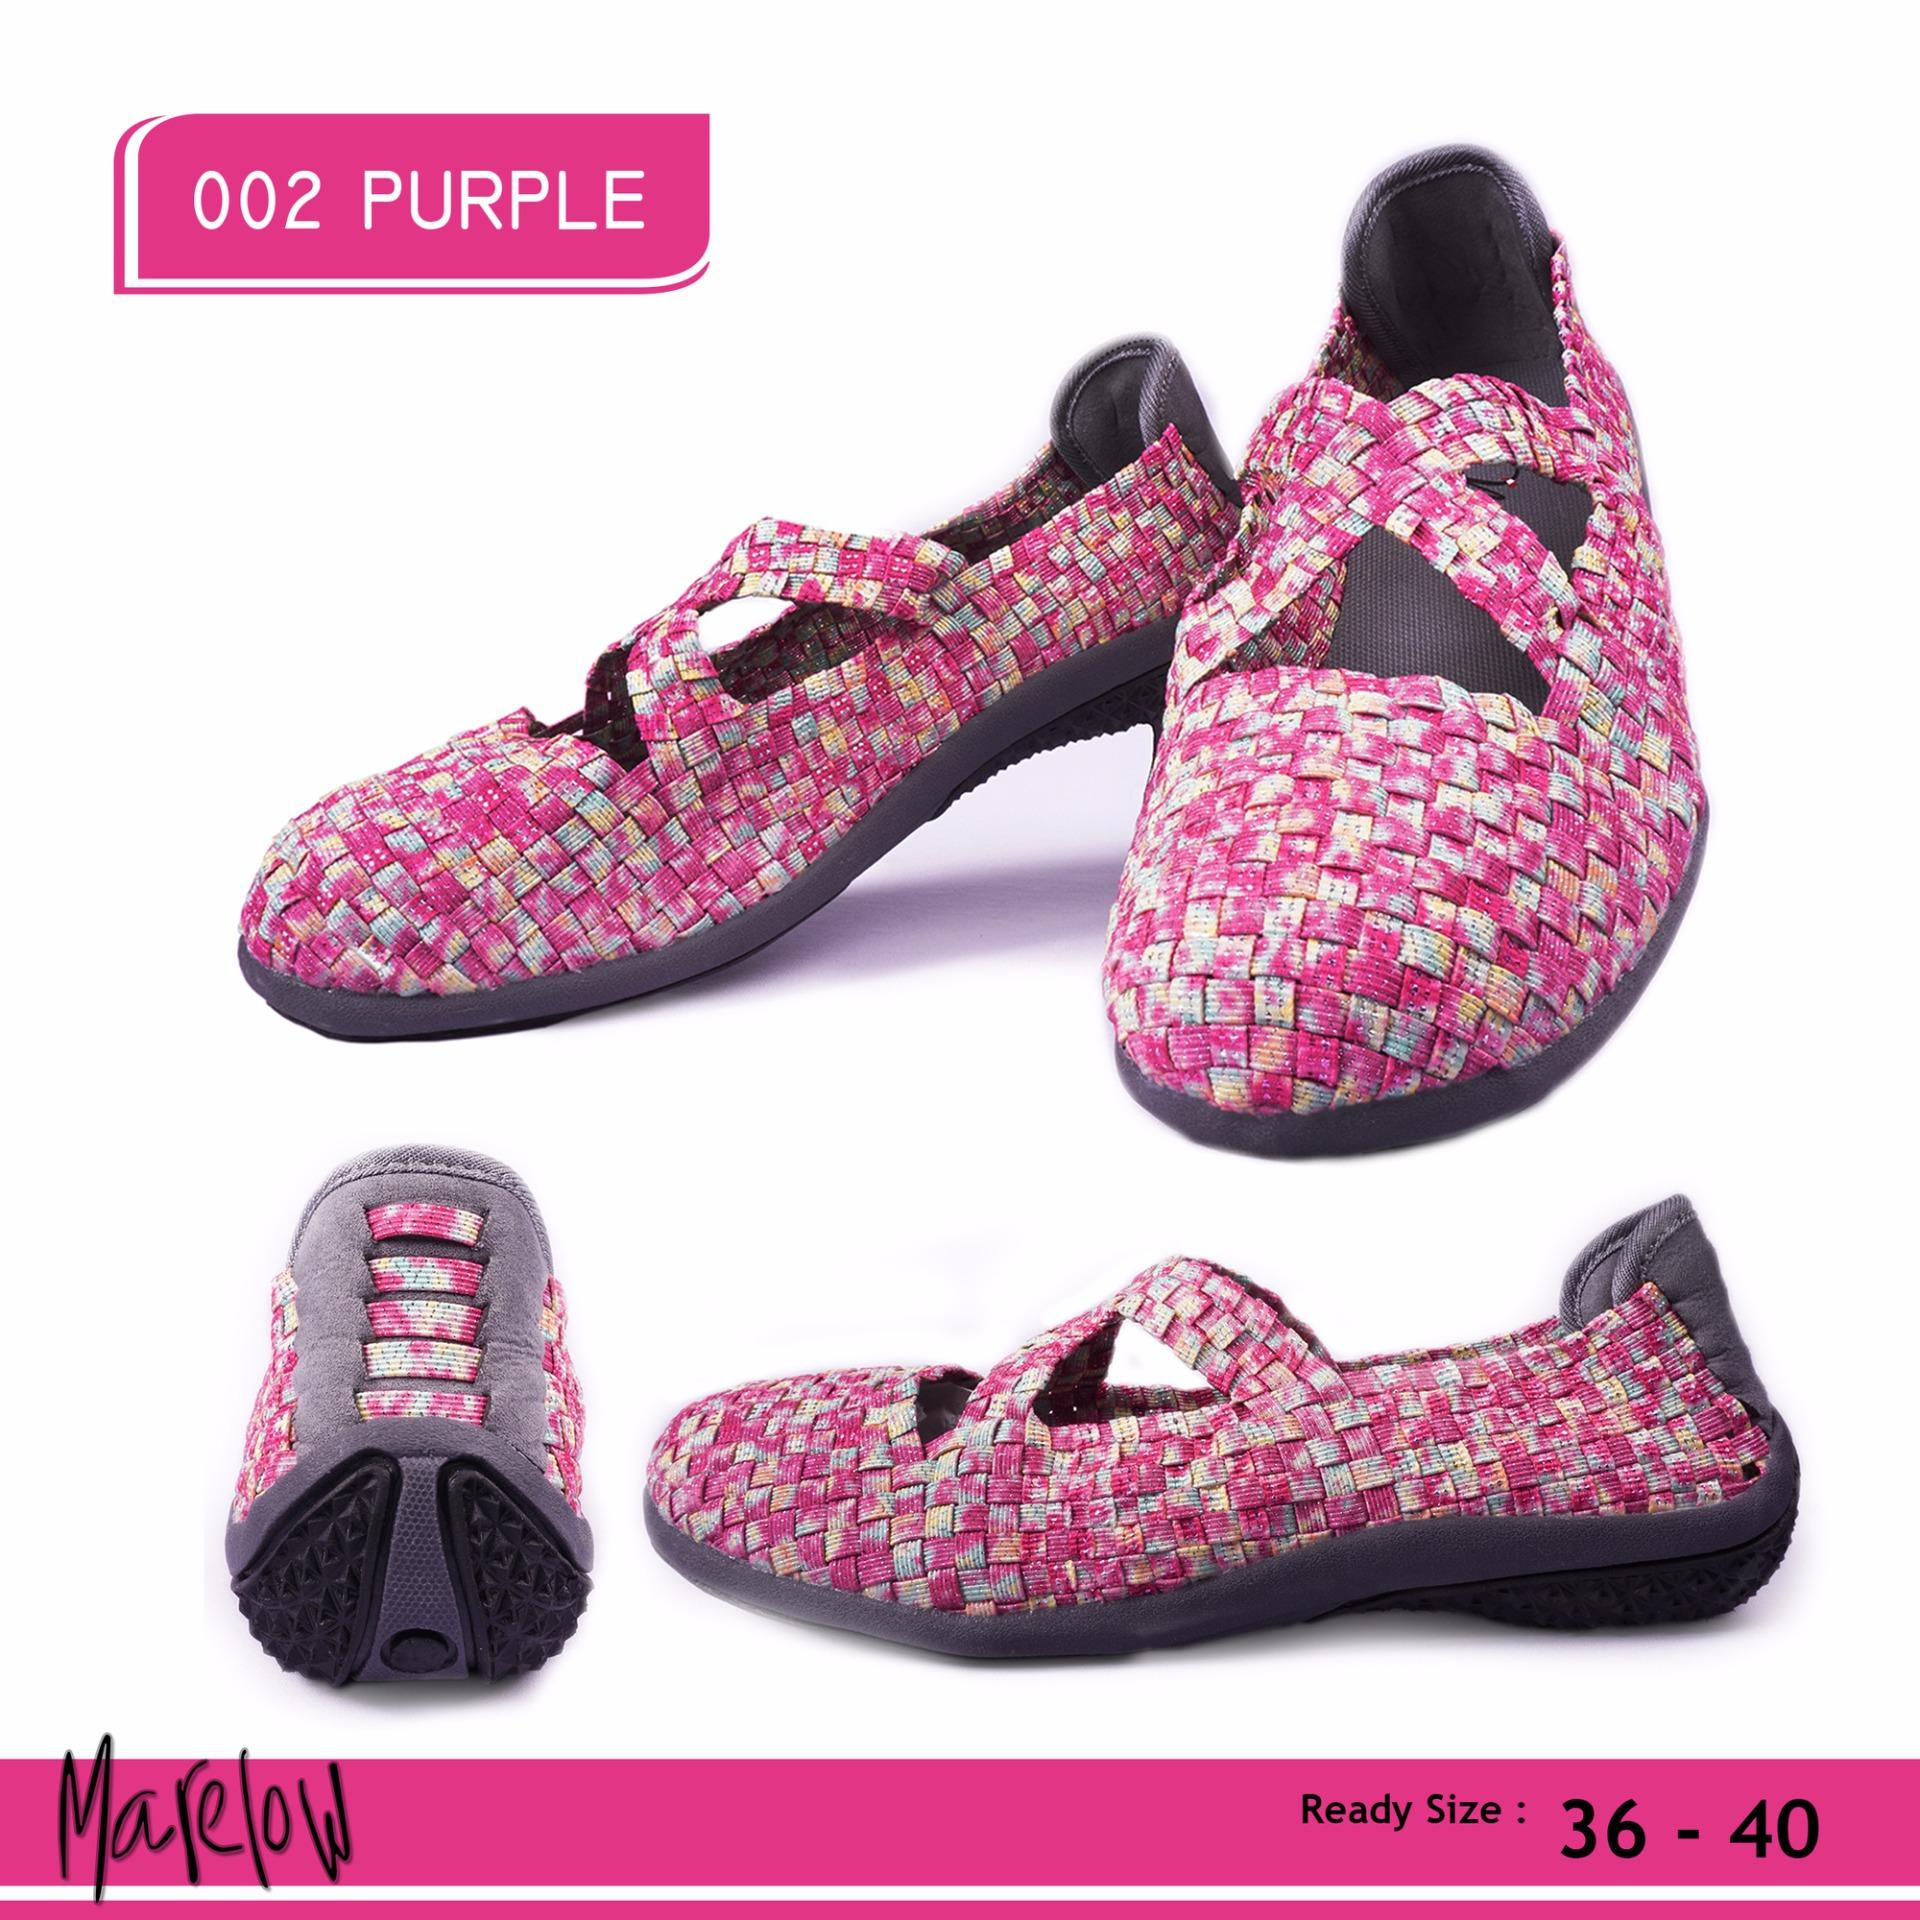 Harga Merlin Sepatu Casual Slip On Import 002 Purple Merlin Ori